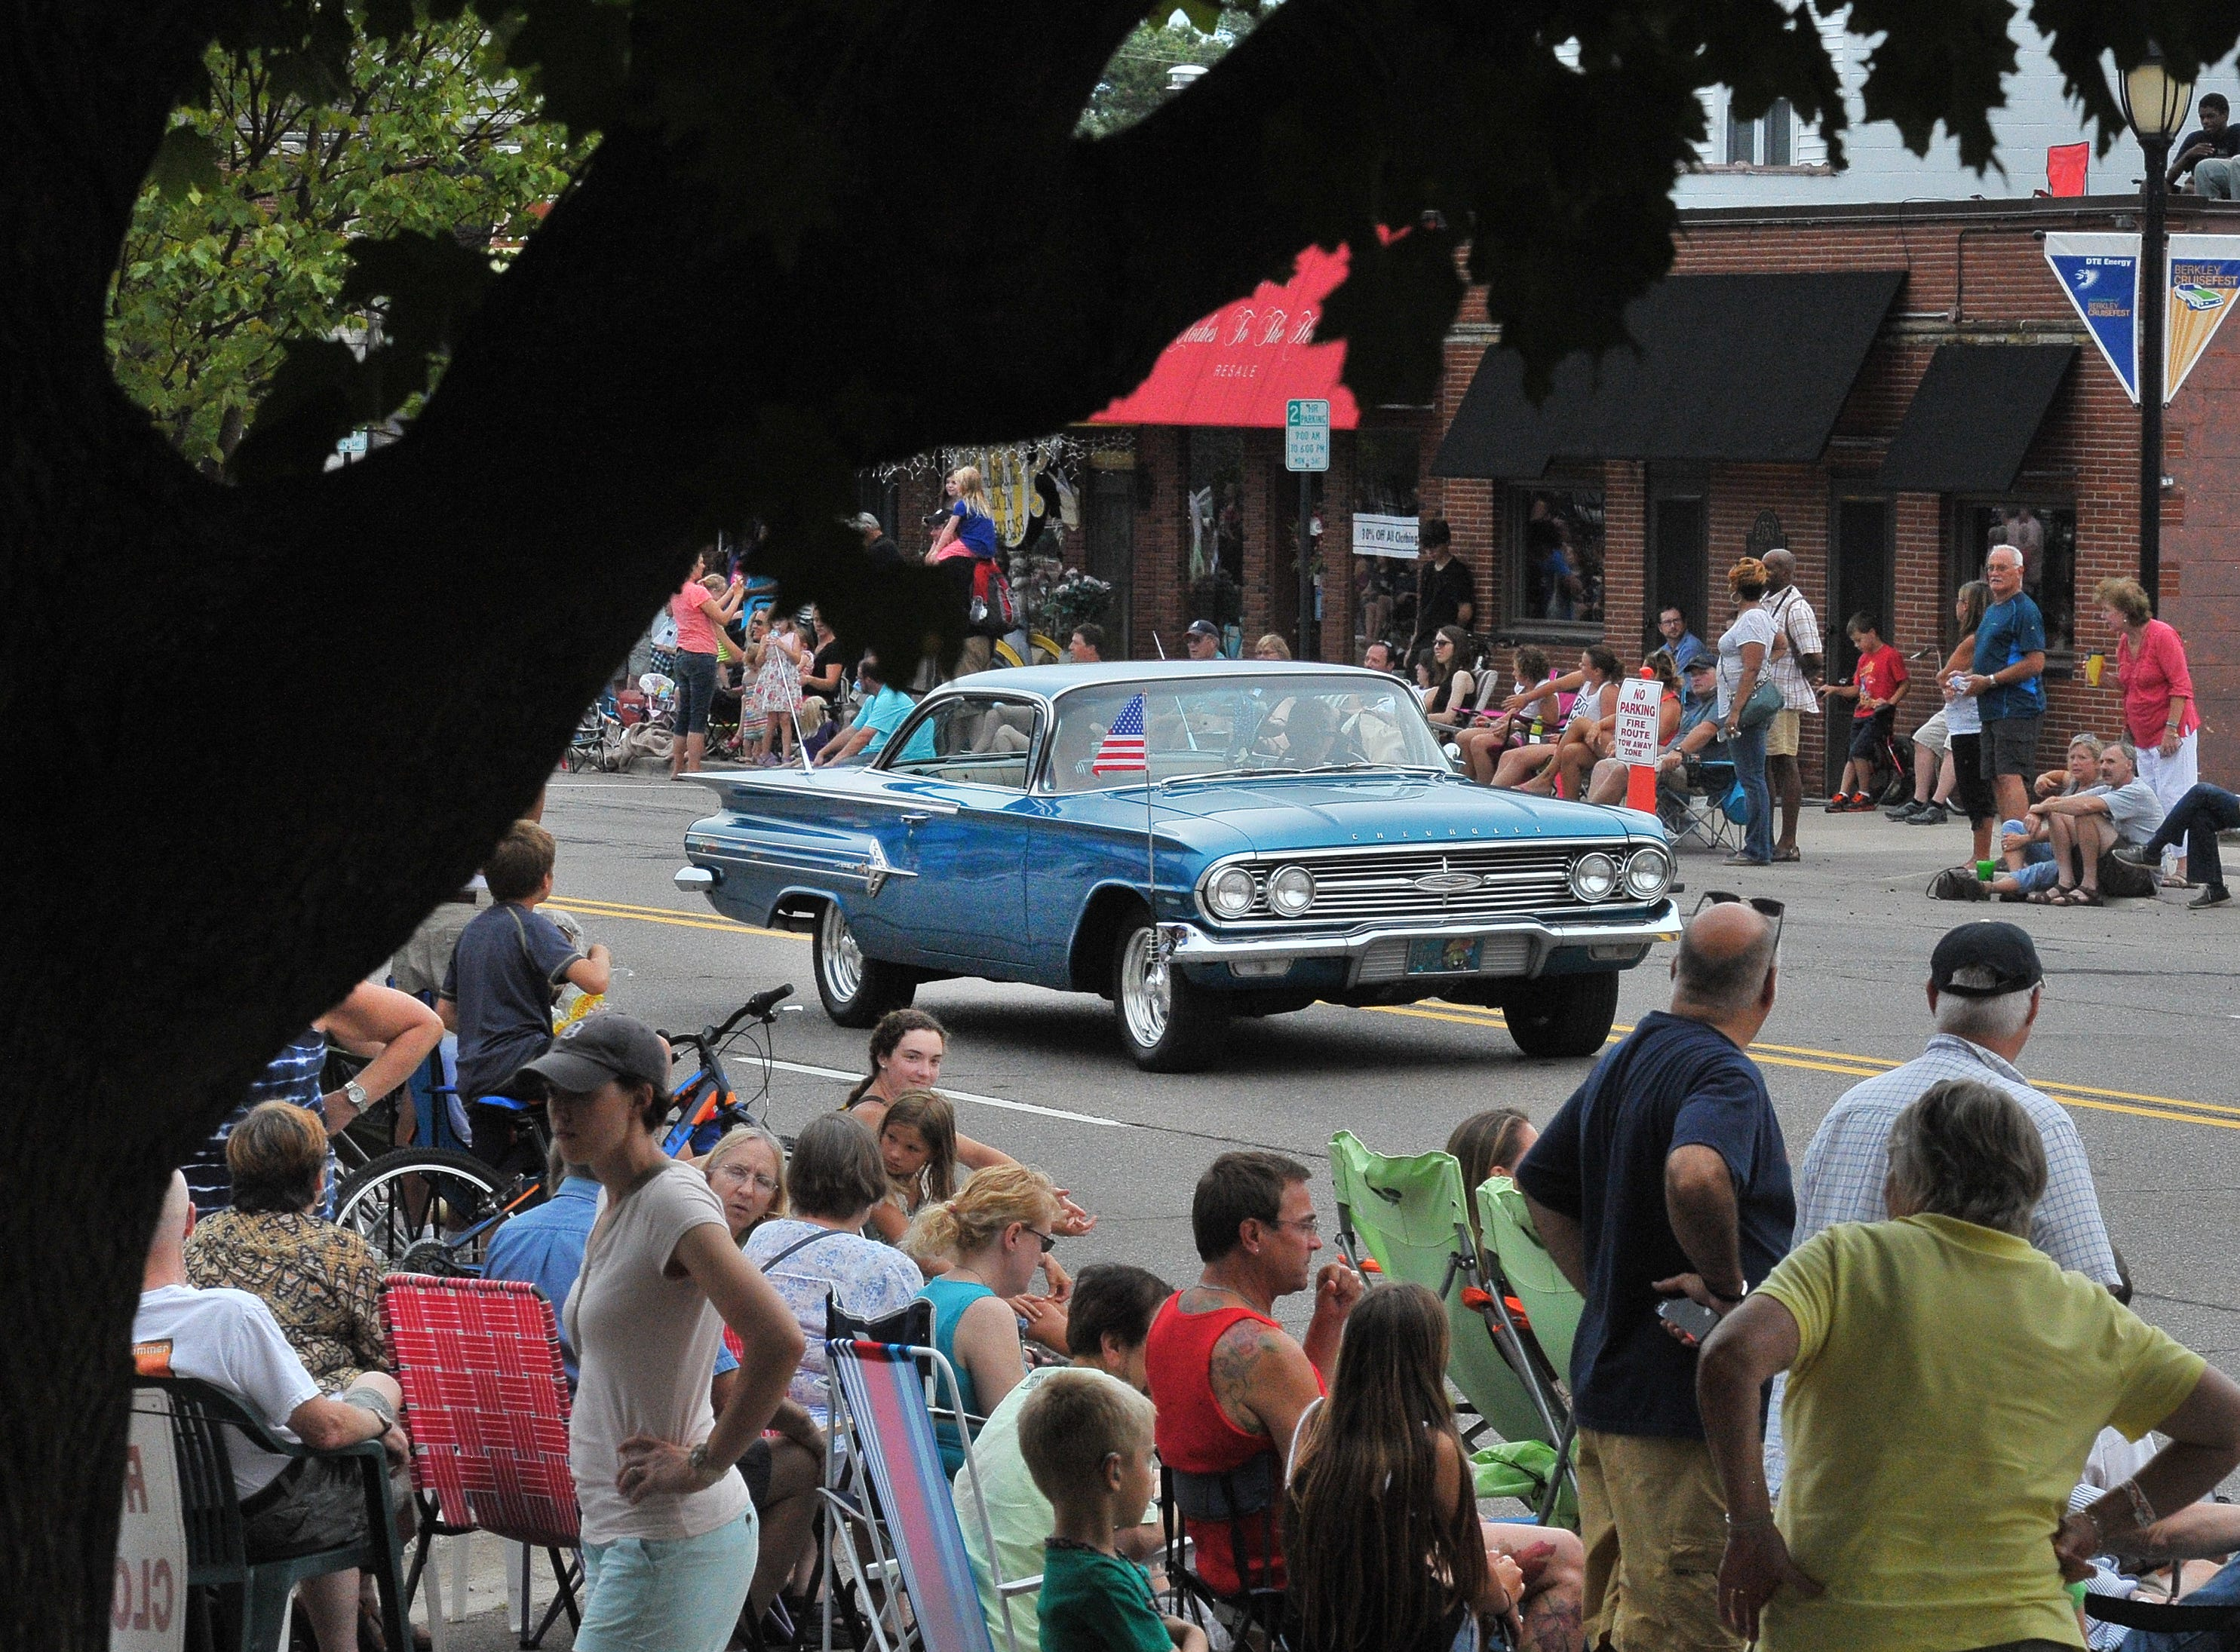 A 1960 Impala makes its way down 12 Mile for the Berkley Cruisefest parade, Aug. 14, 2015.